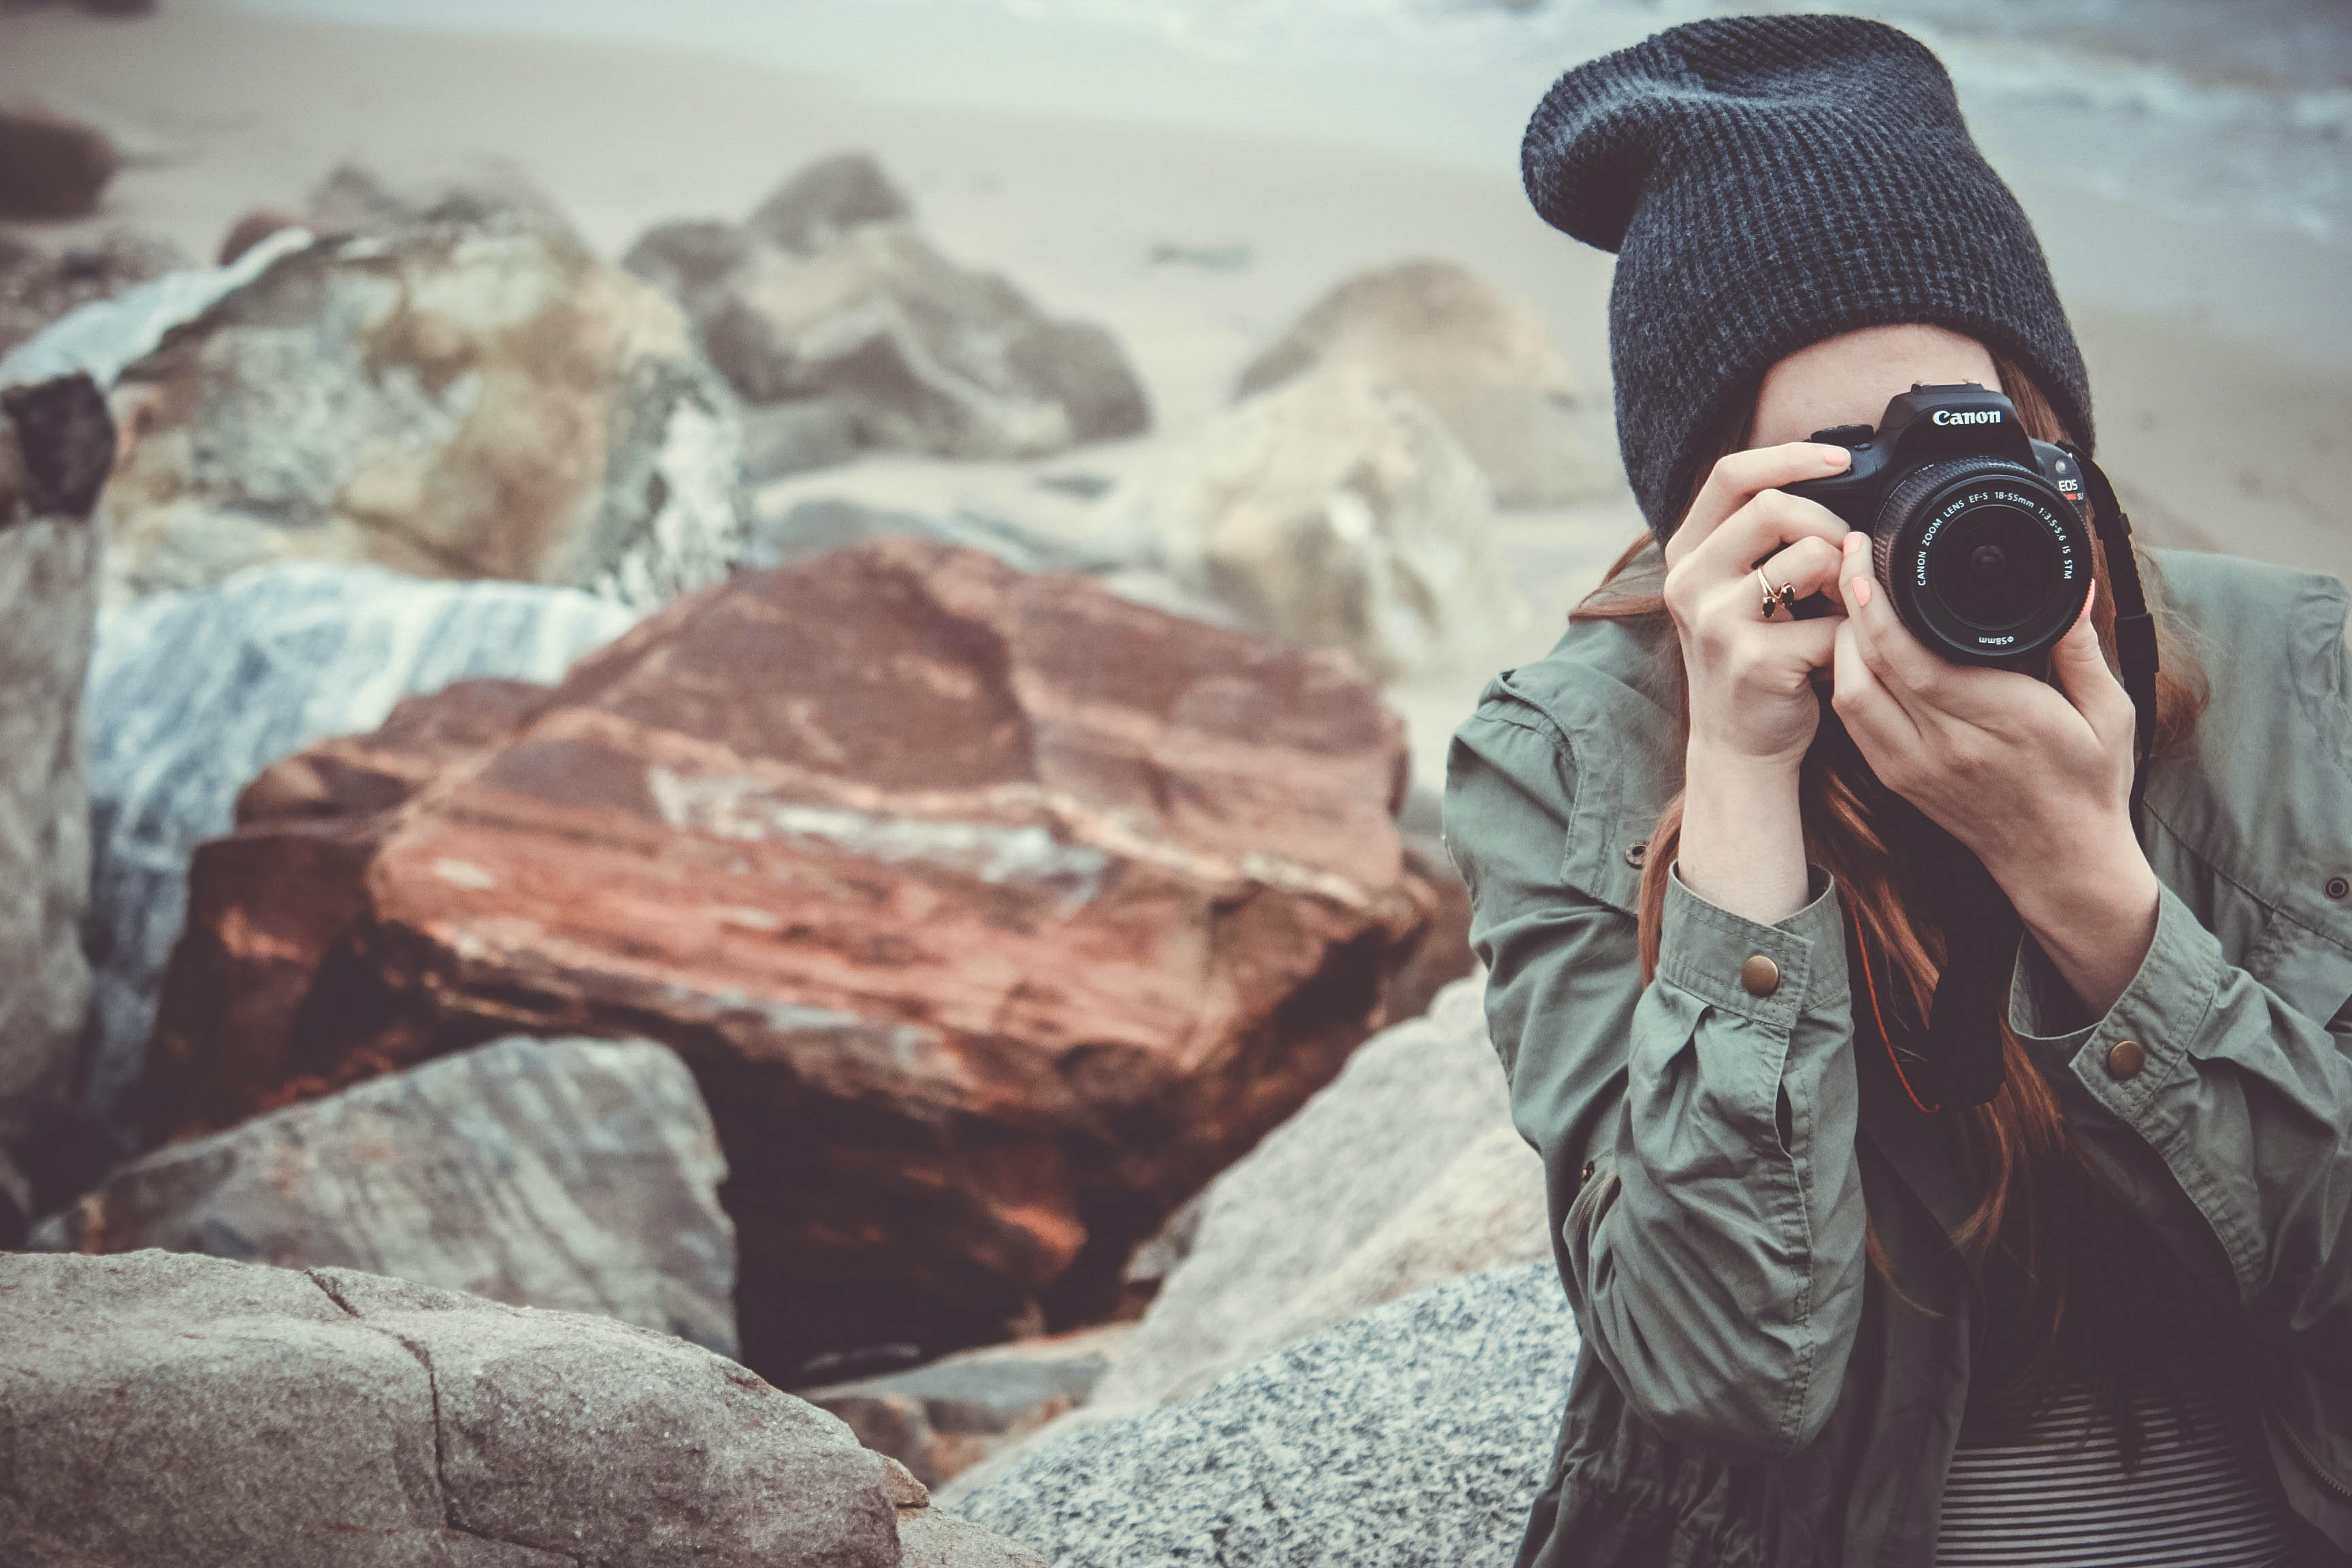 woman wearing gray jacket and black knit cap holding black Canon DSLR camera near big rocks at daytime